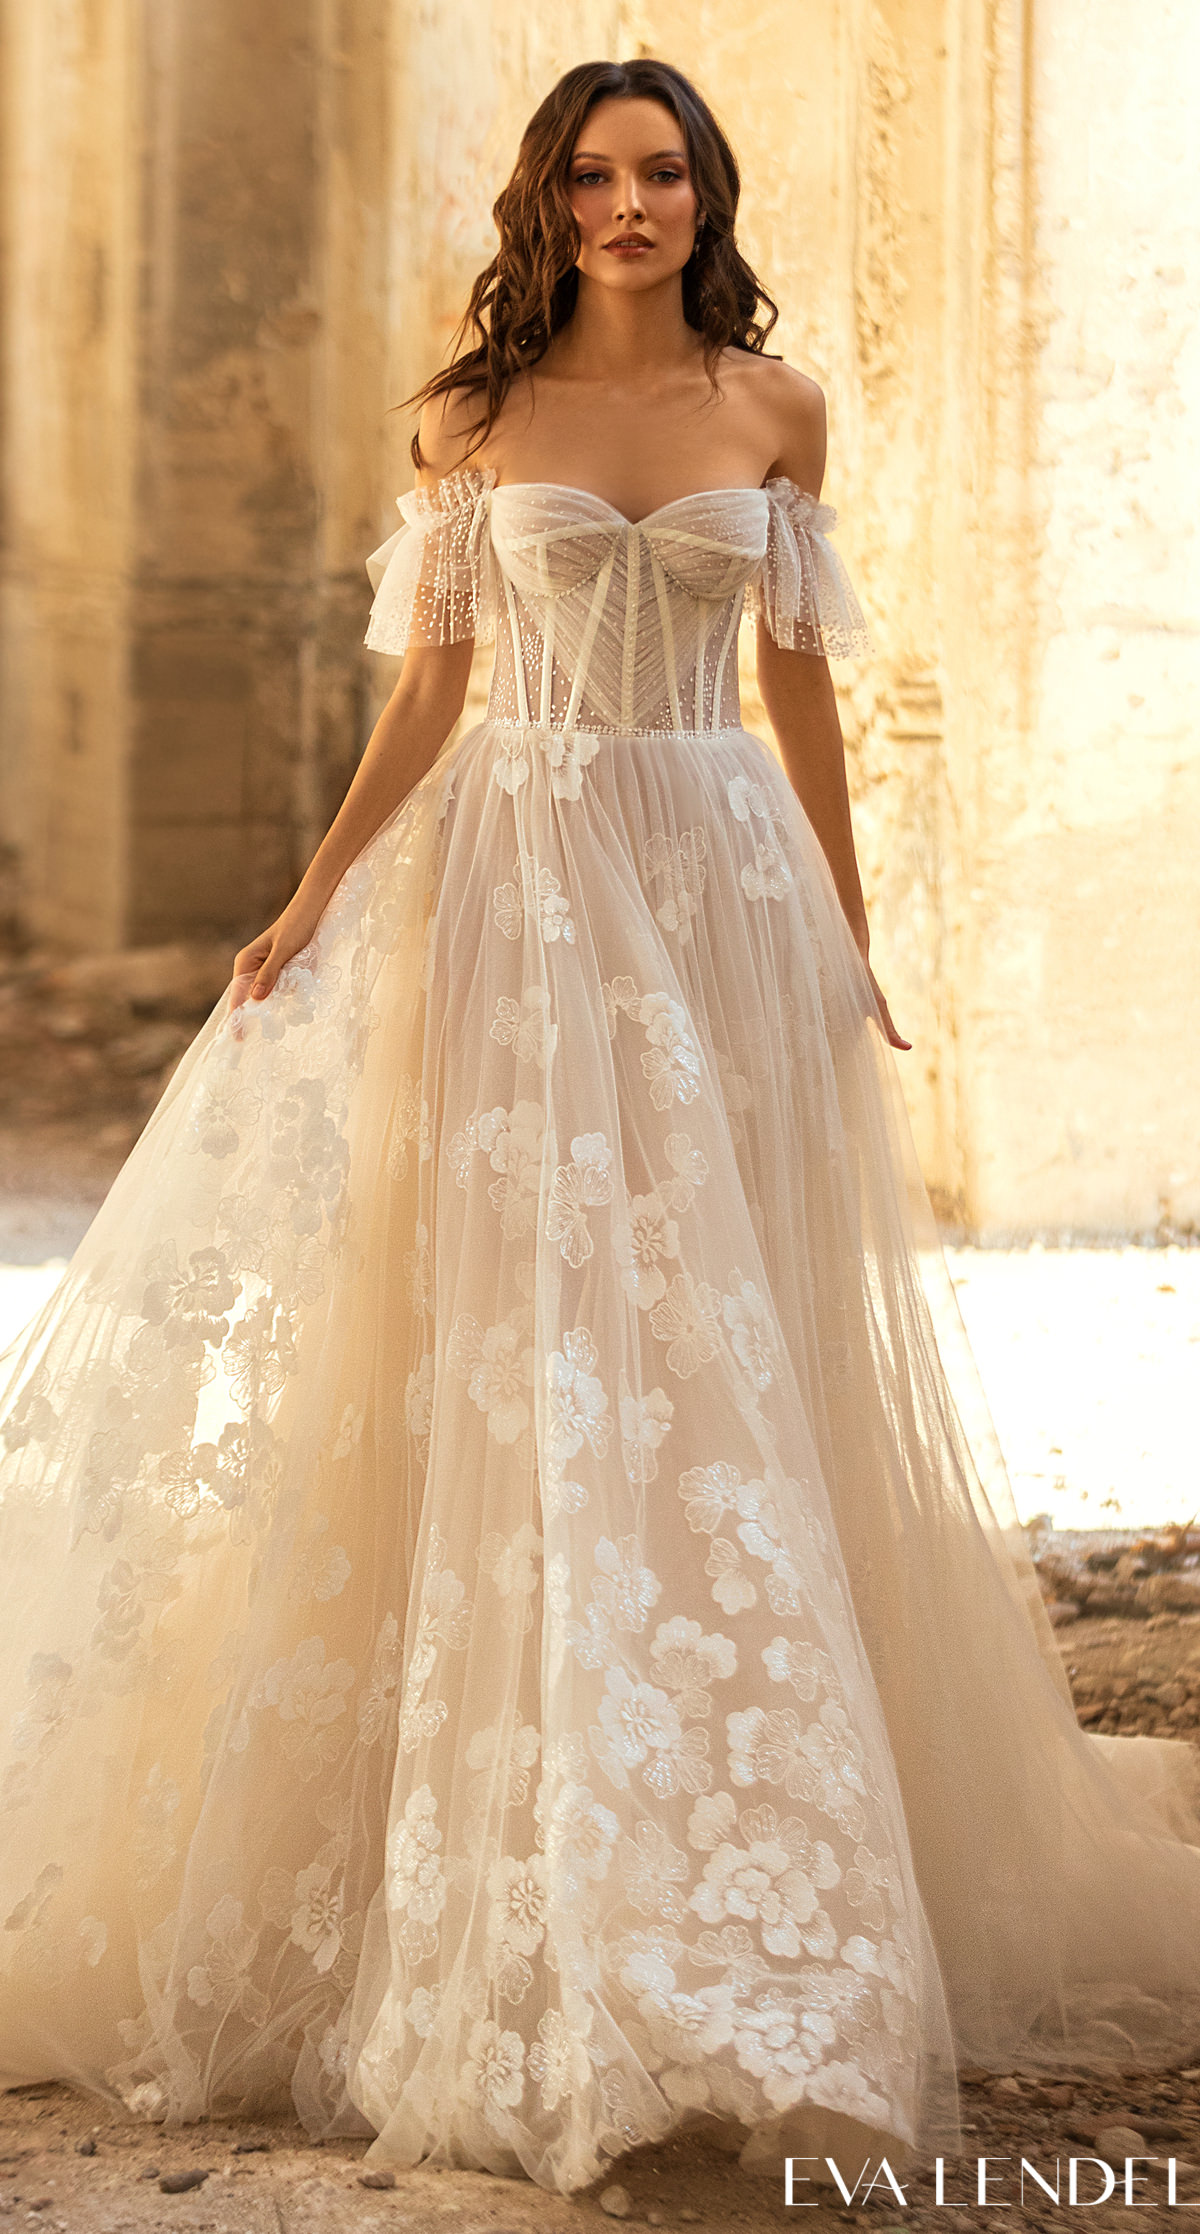 Eva Lendel Wedding Dresses 2021- Golden Hour Collection -Tiziana